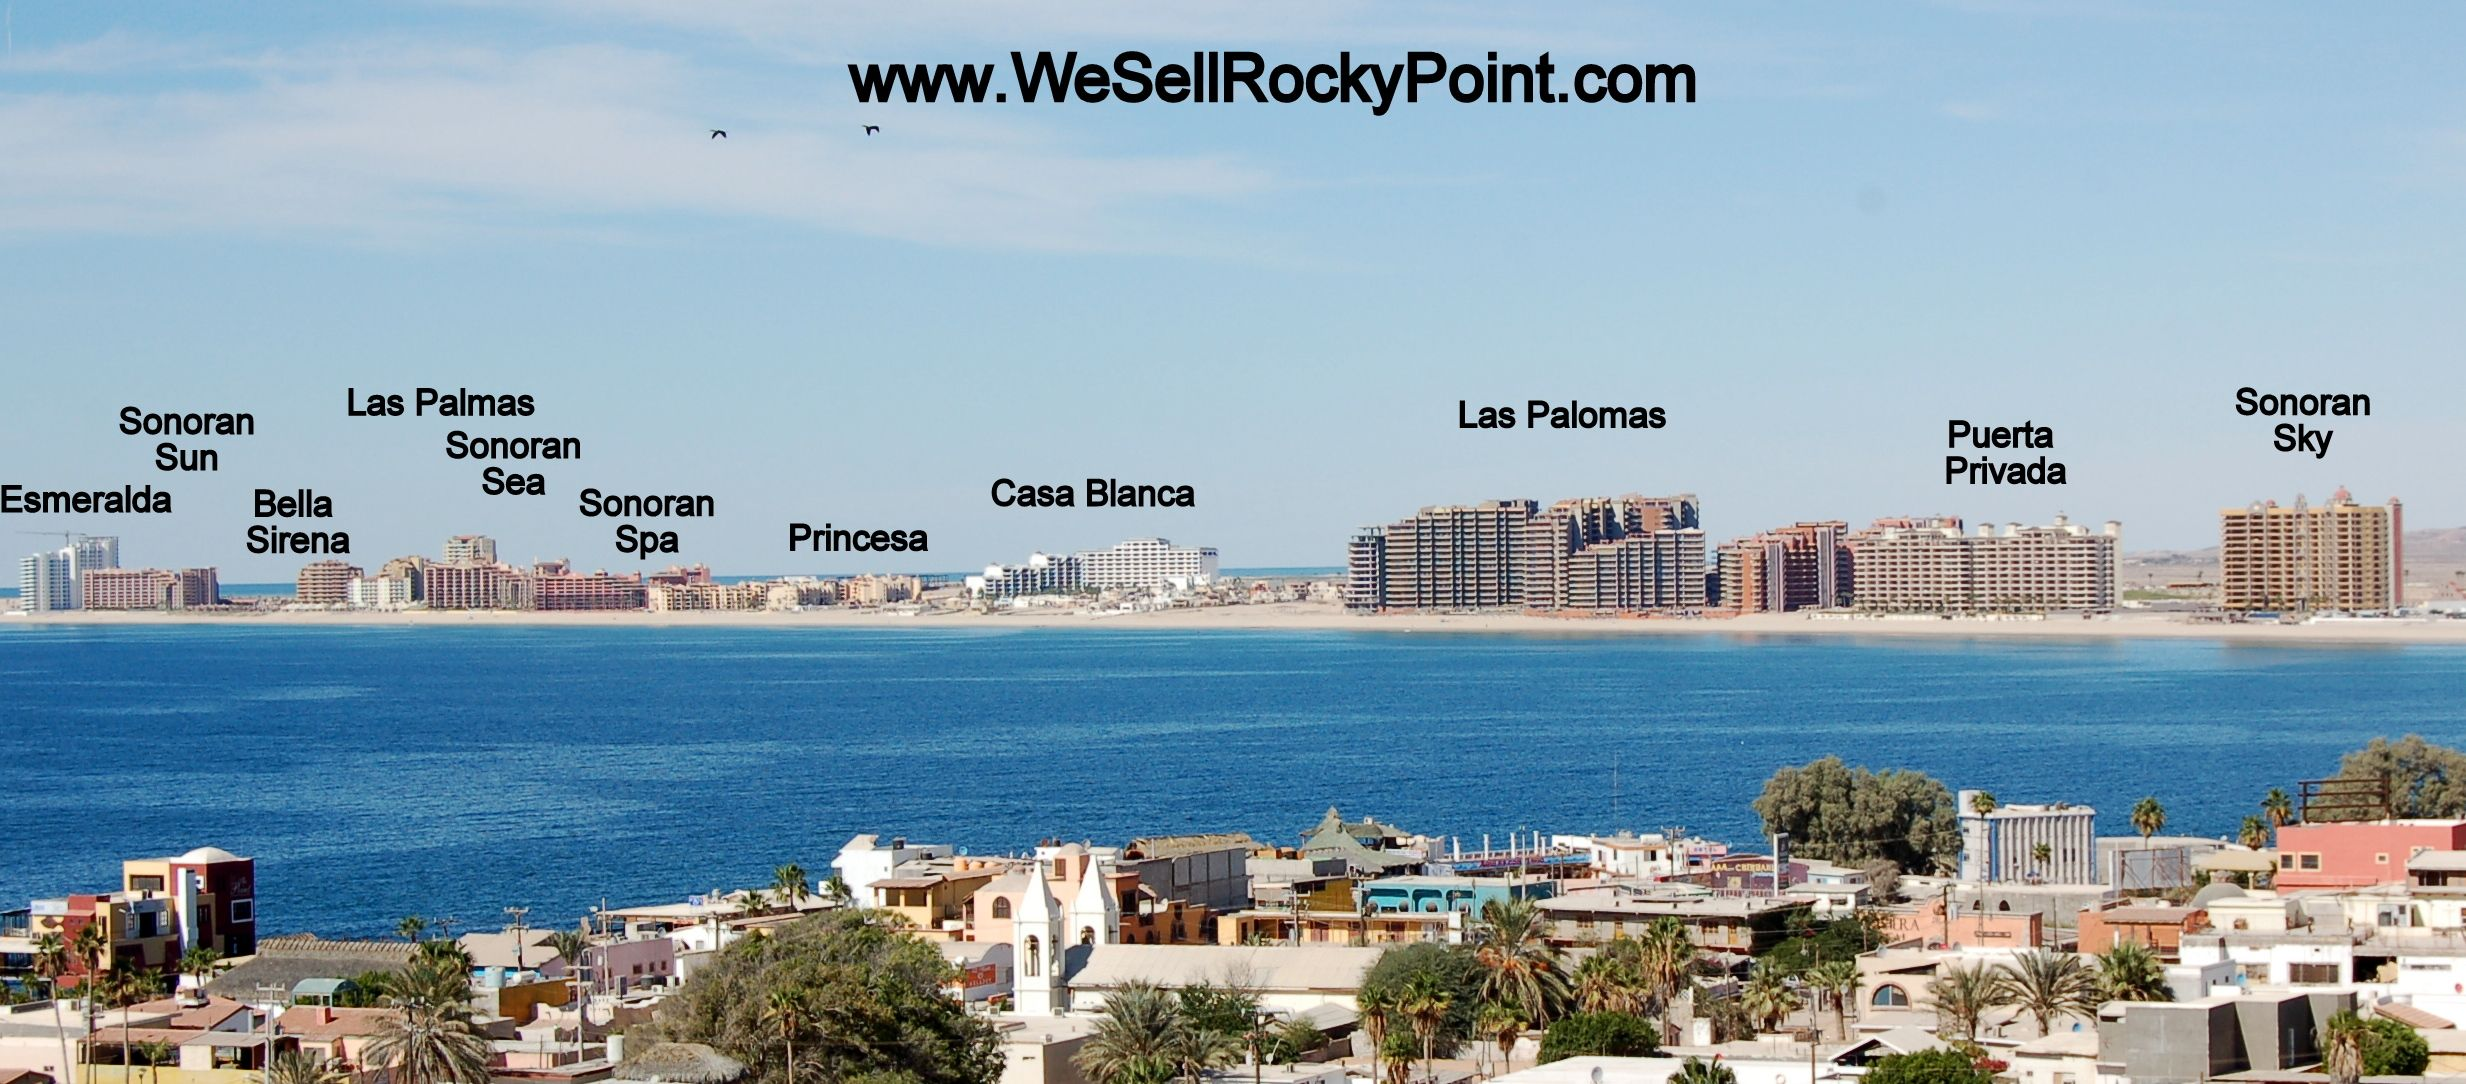 Rocky Point Mexico Google Search